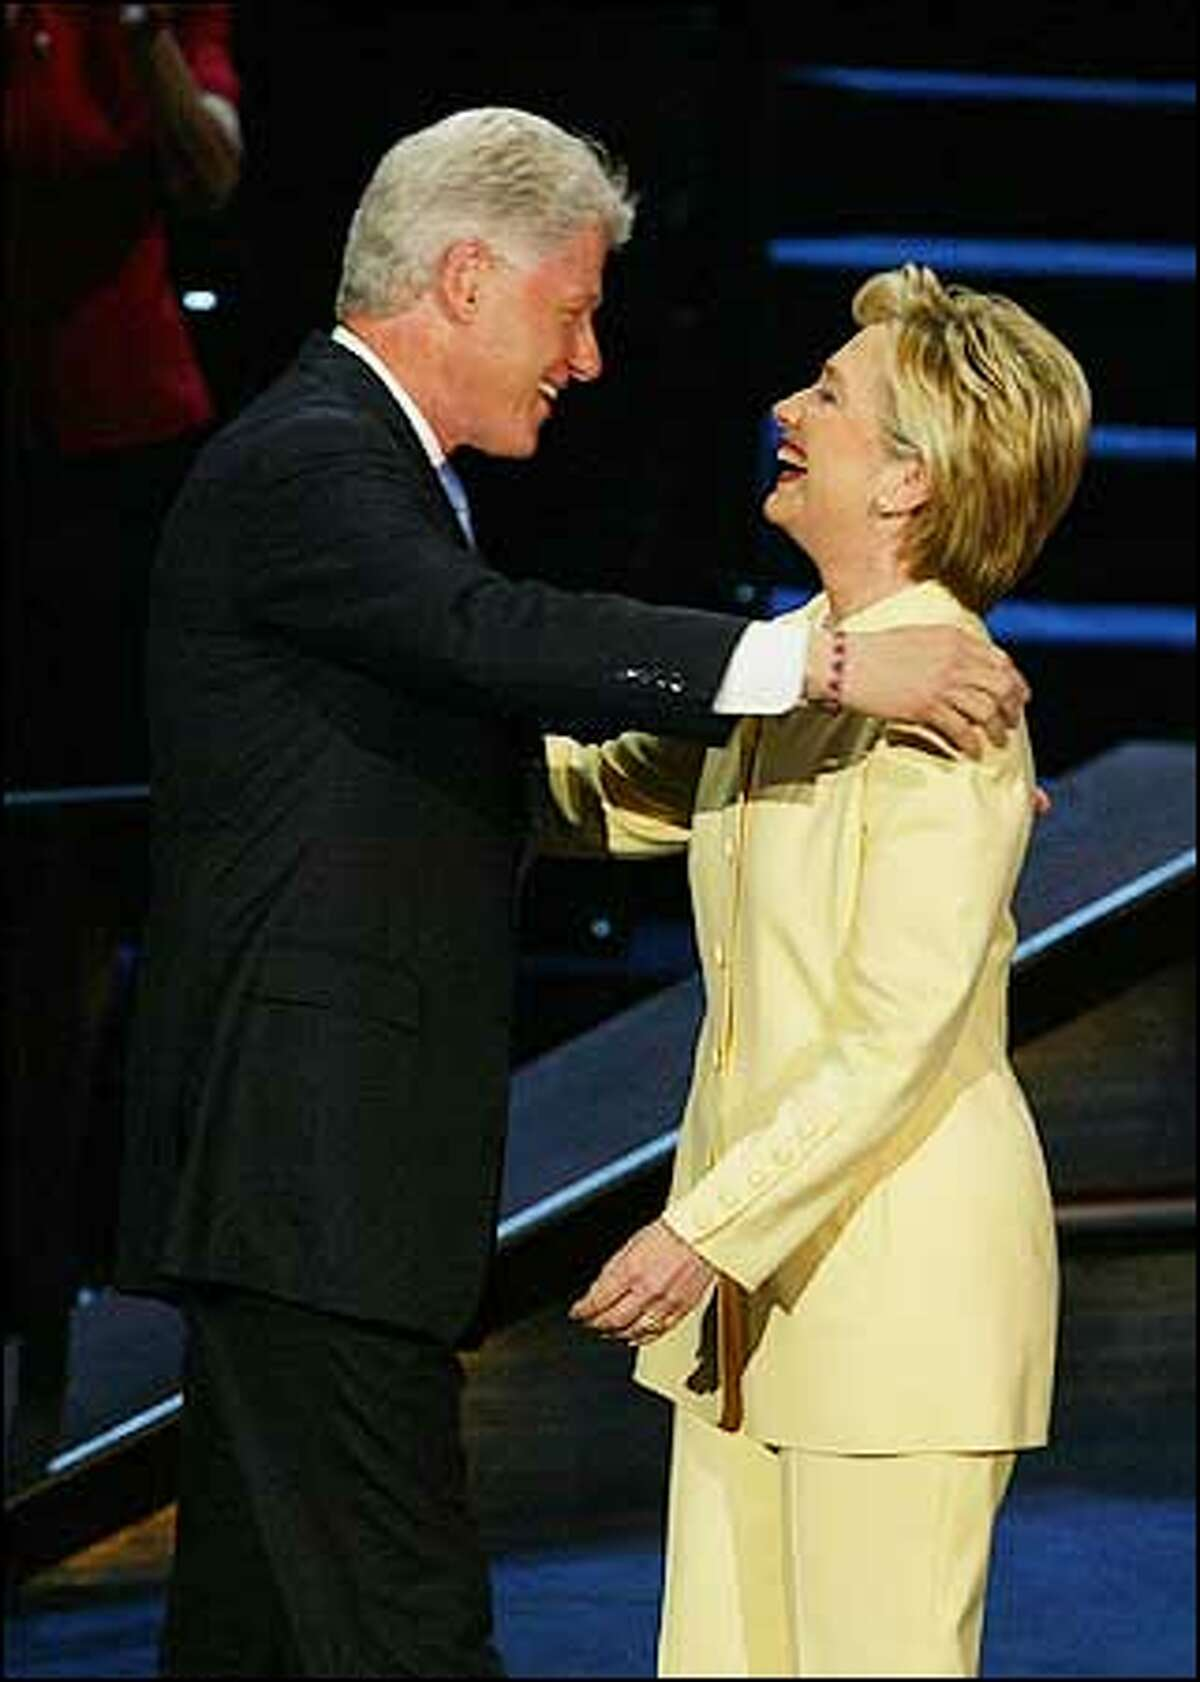 Sen. Hillary Rodham Clinton, D-N.Y., introduced her husband, former President Bill Clinton, at the Democratic National Convention.